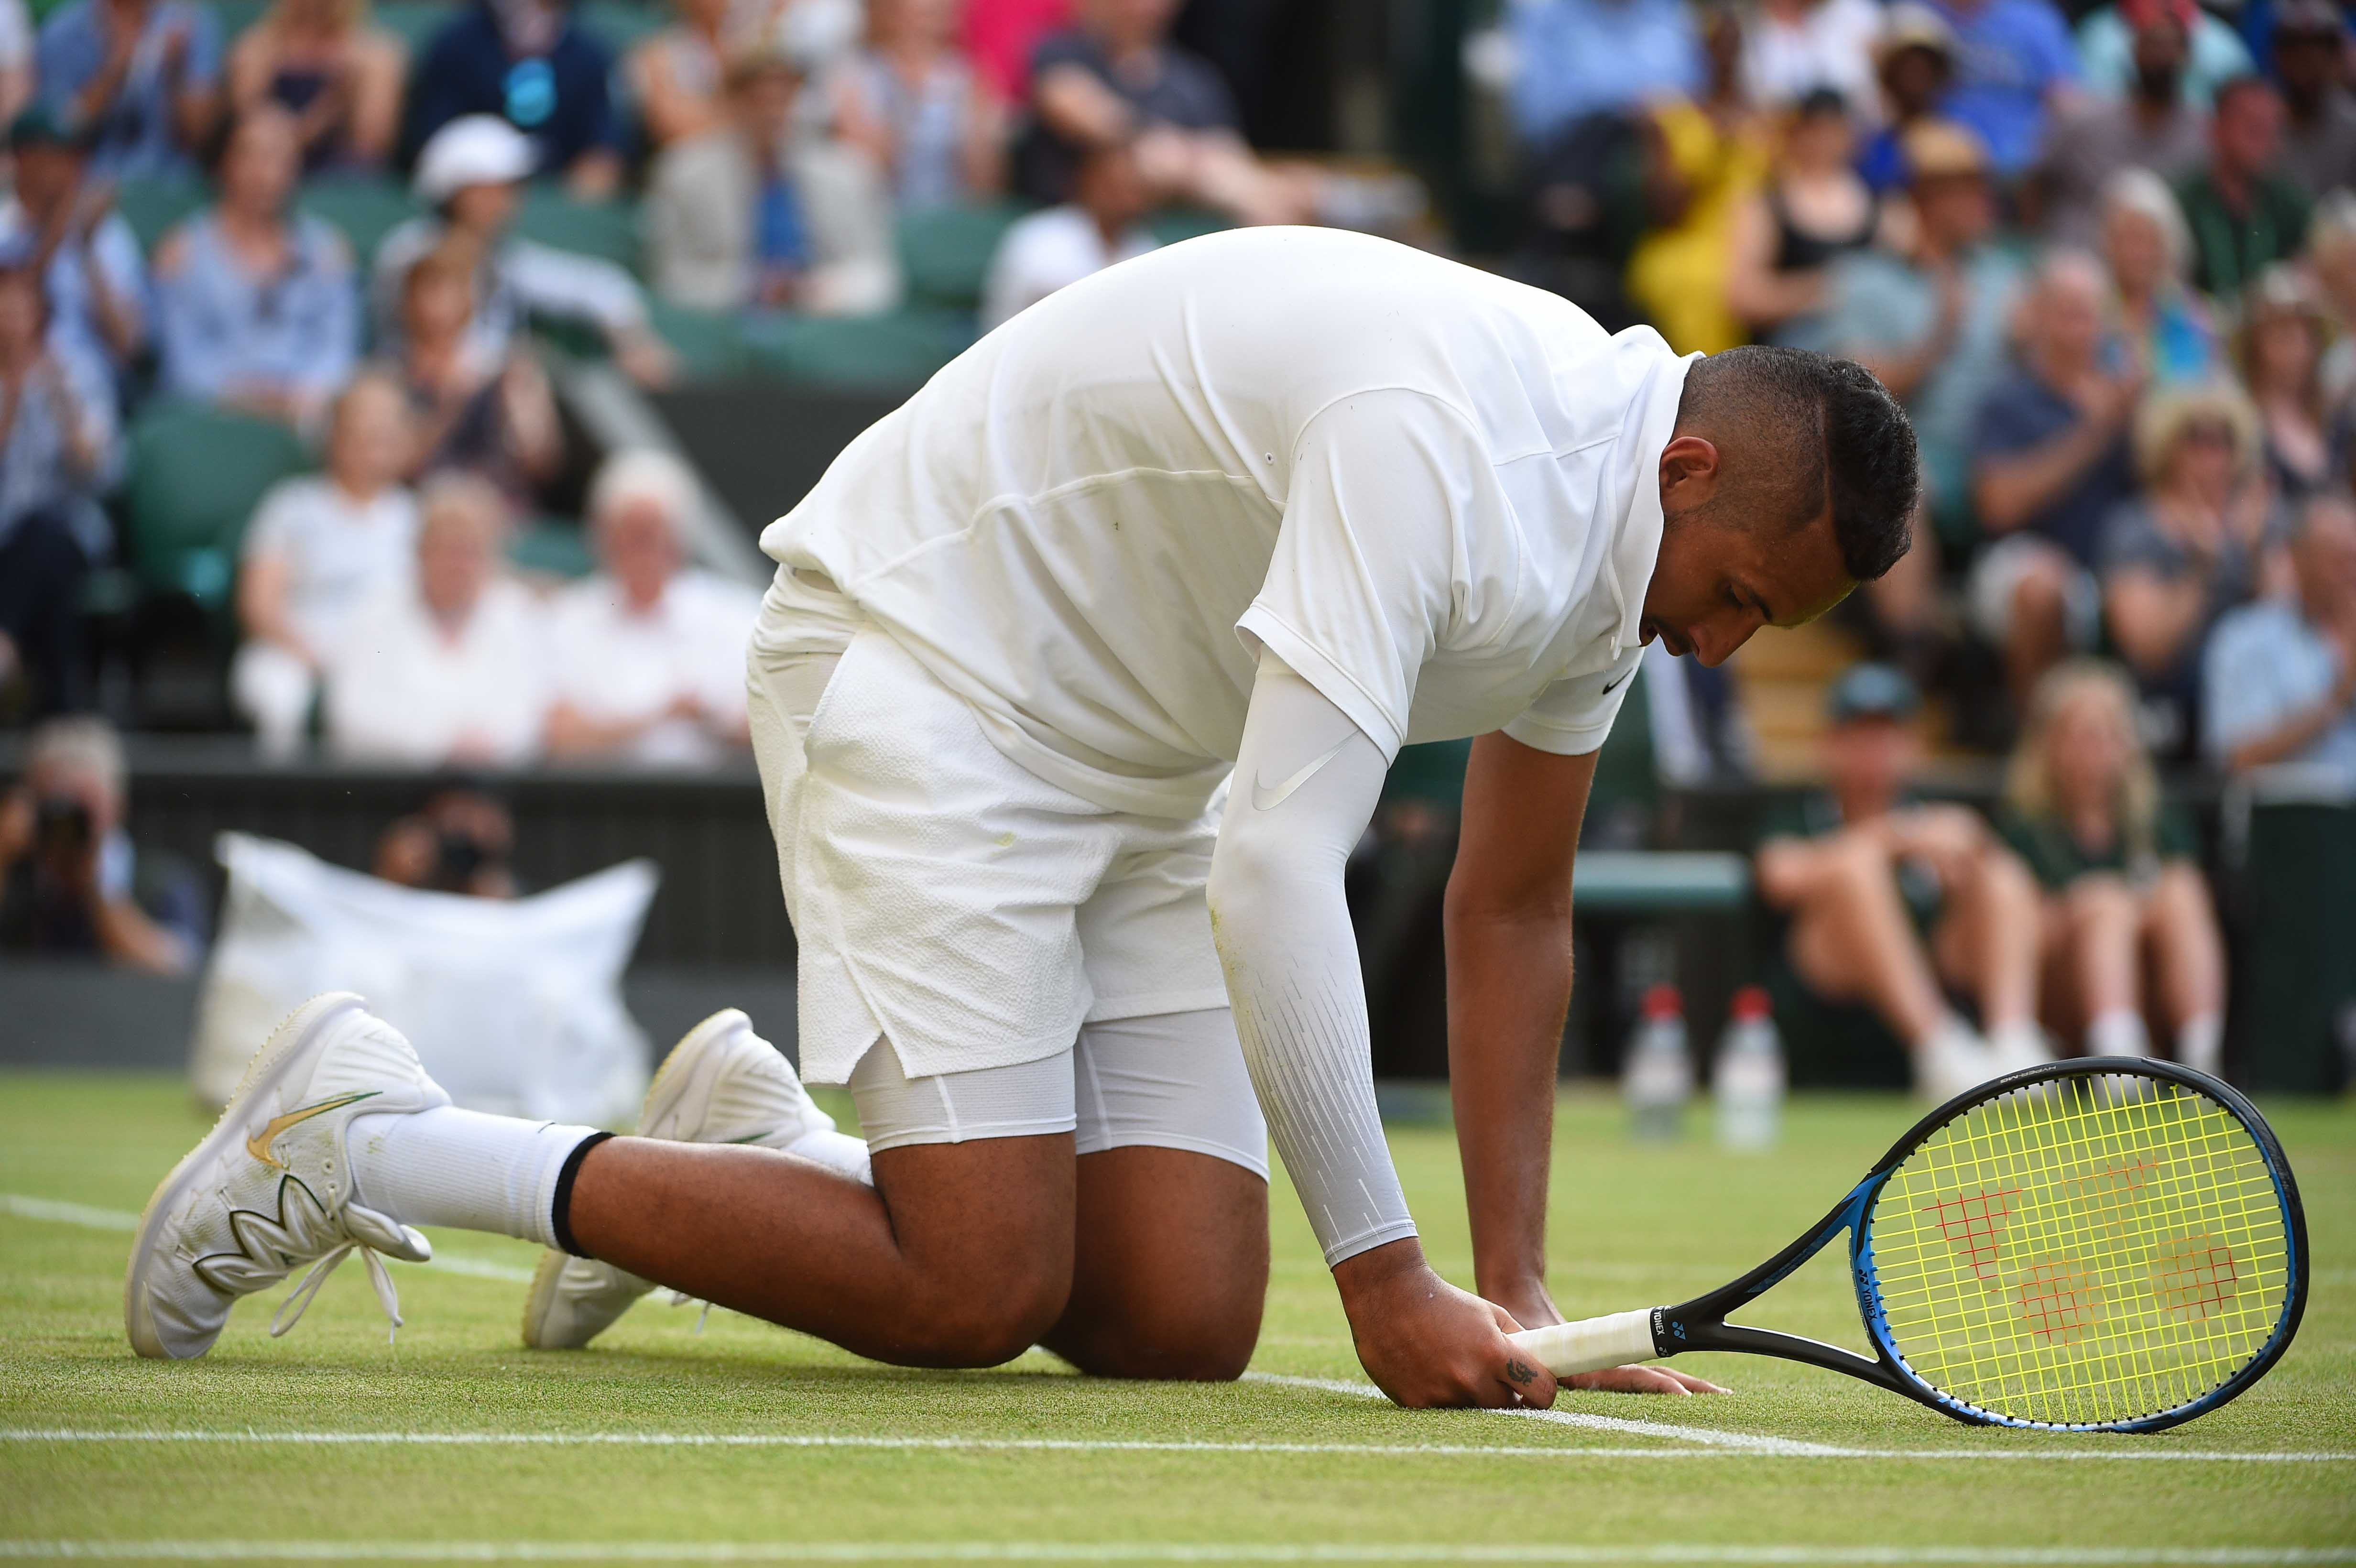 Nick Kyrgios at Wimbledon 2019